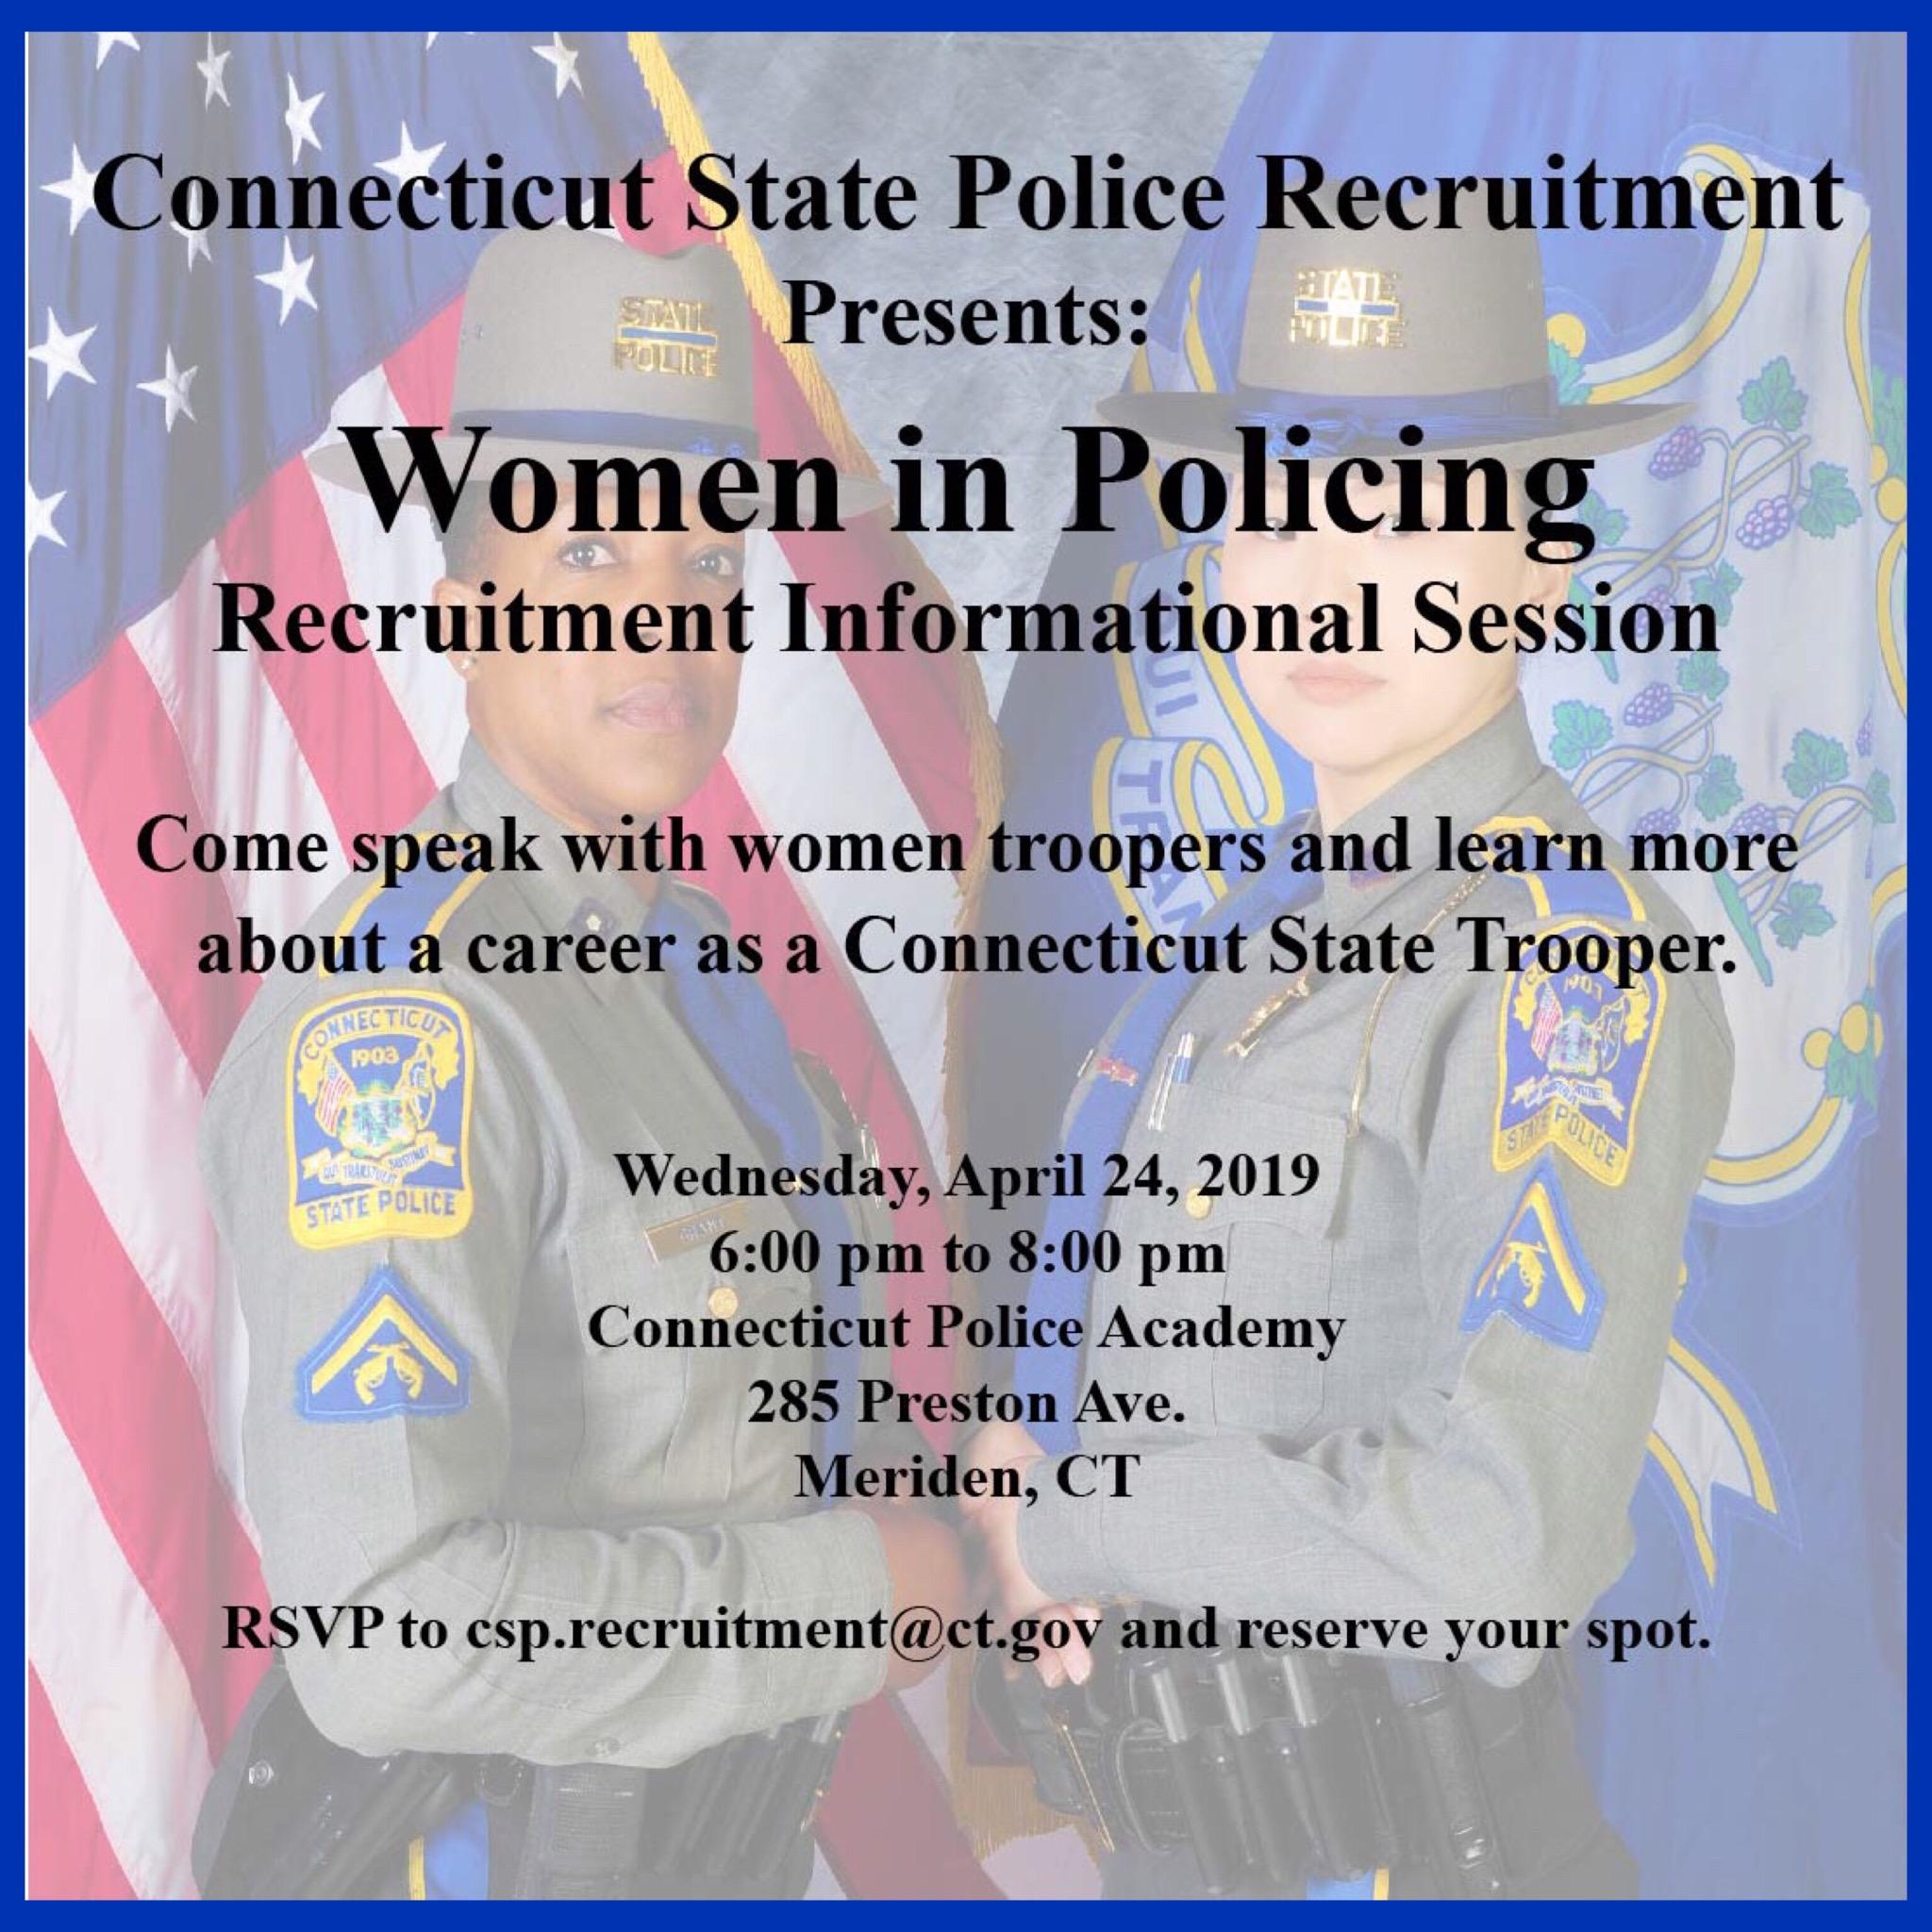 State police invite interested women to recruiting event